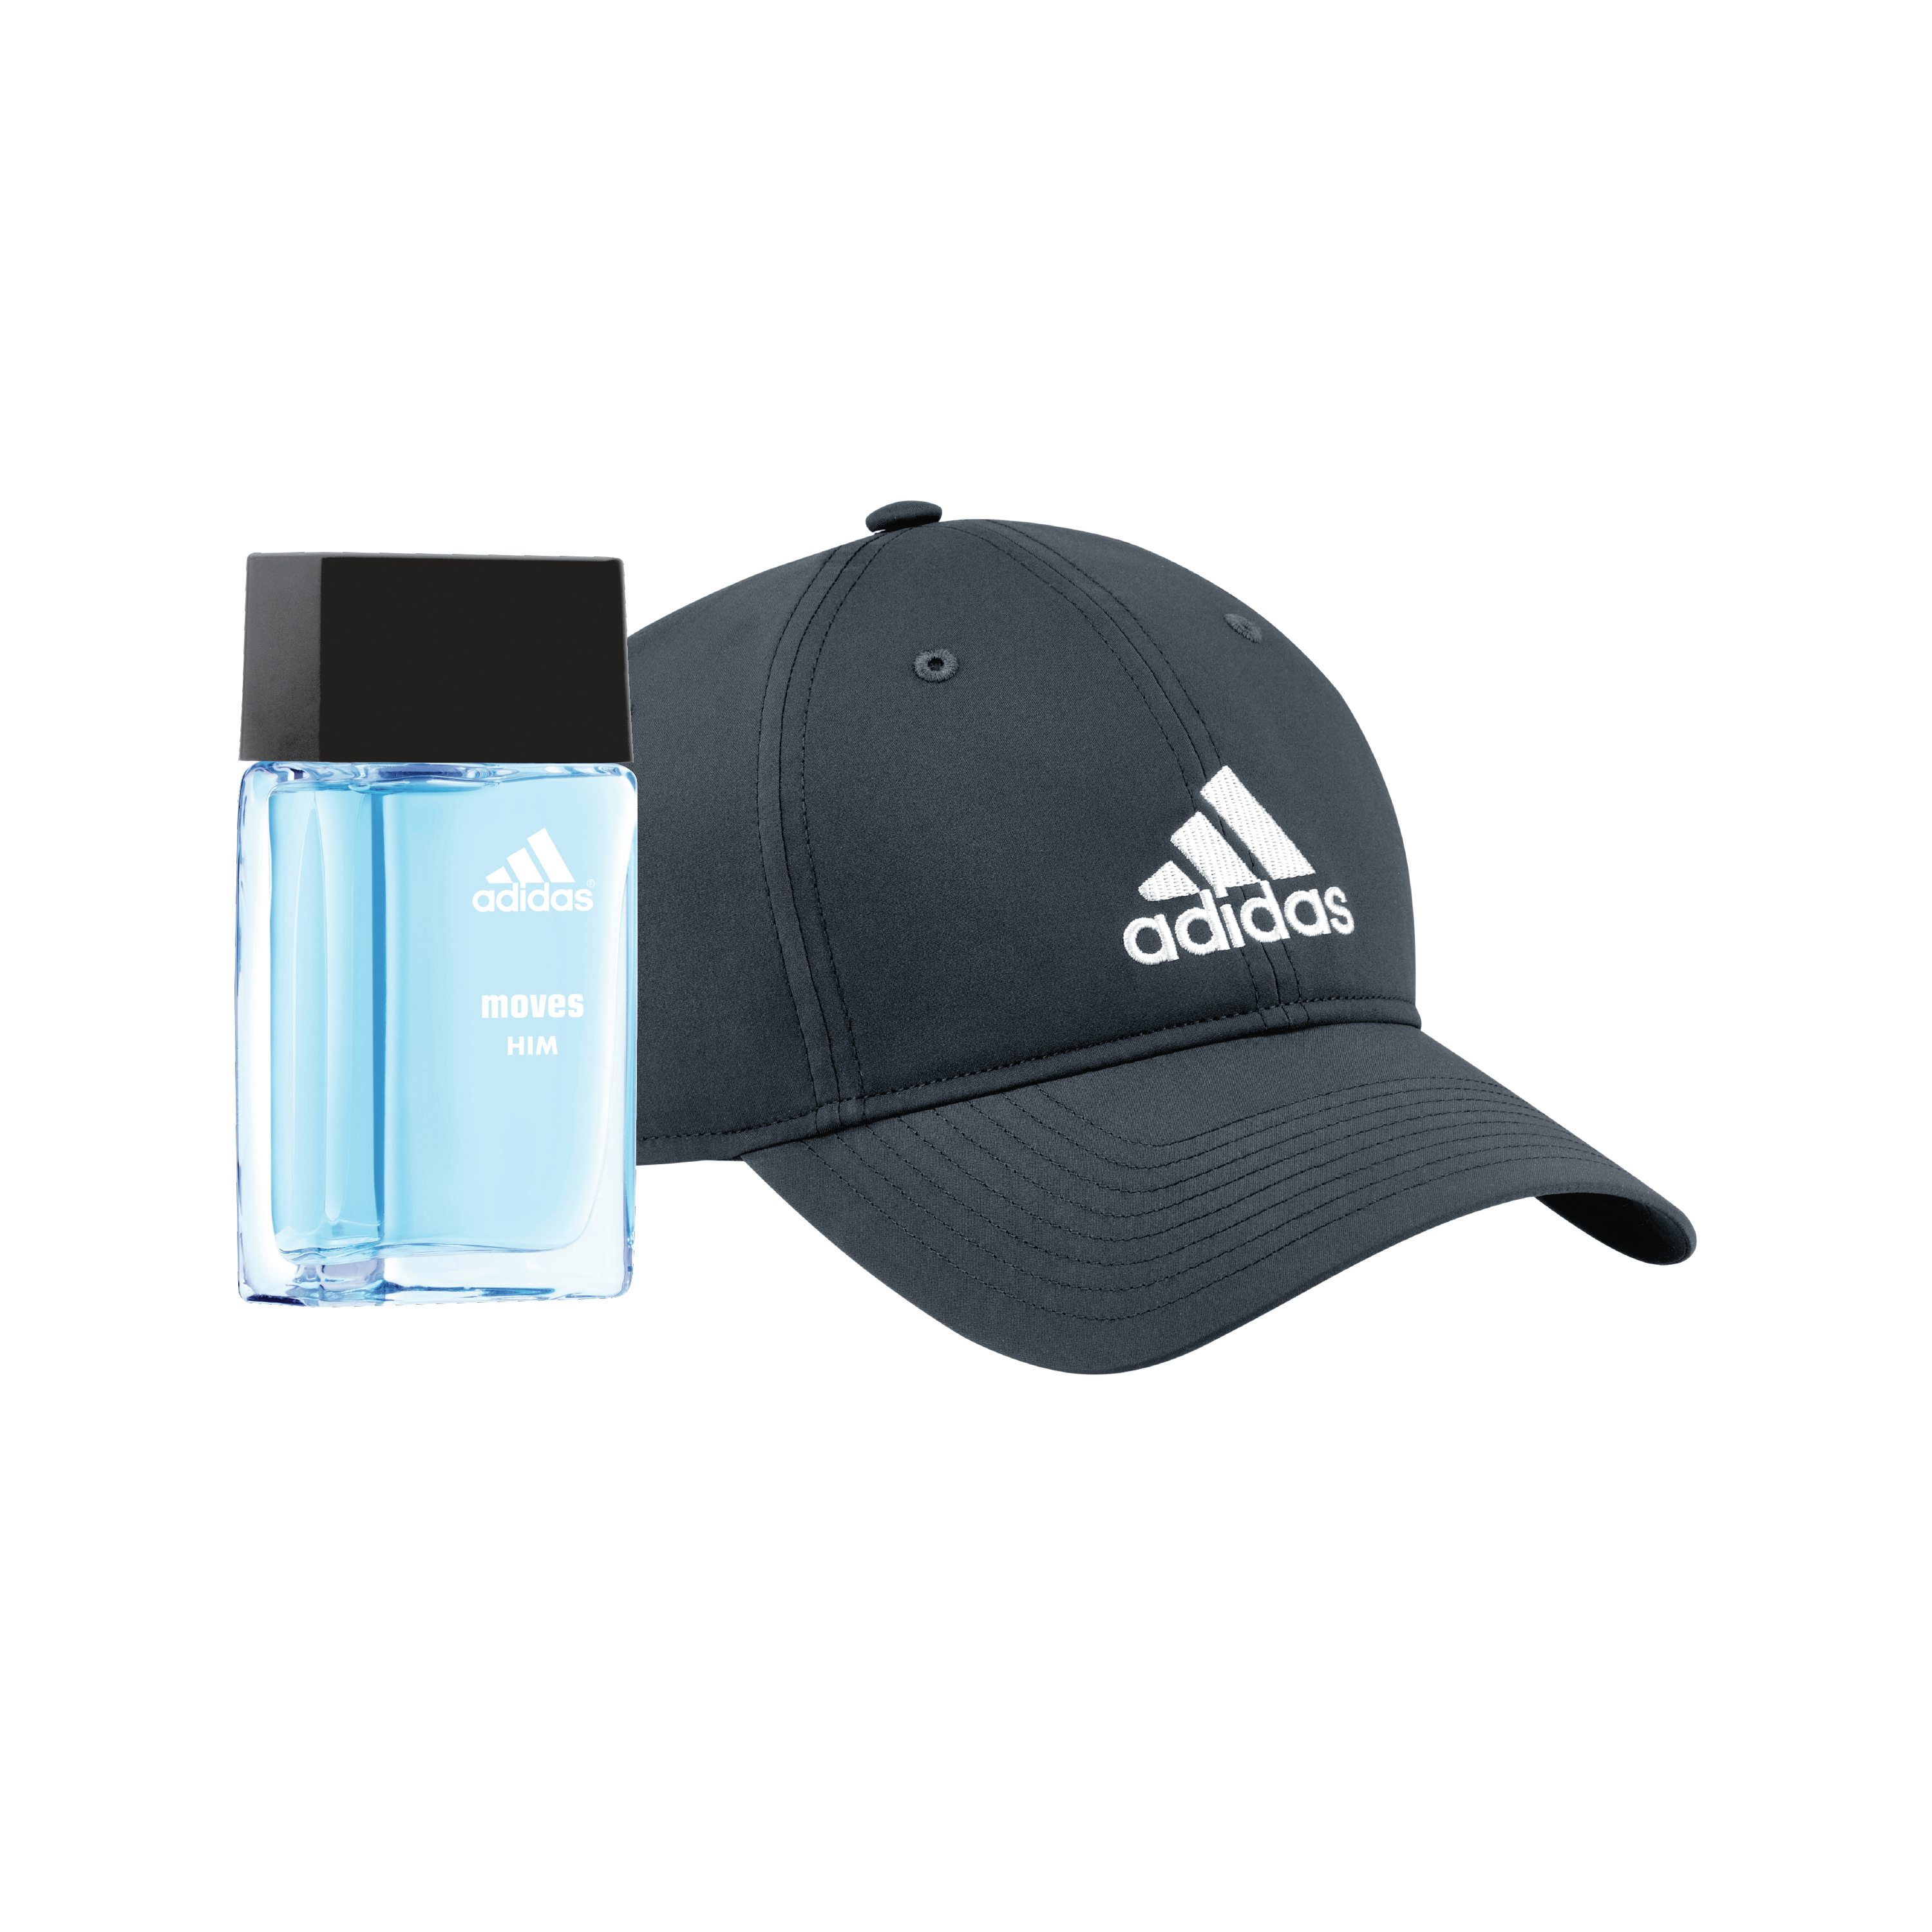 brand new c4c2d 9dfaf Adidas Moves for Him Eau de Toilette Fragrance   Adidas Hat, Holiday Gift  Set for Men, 2 pc